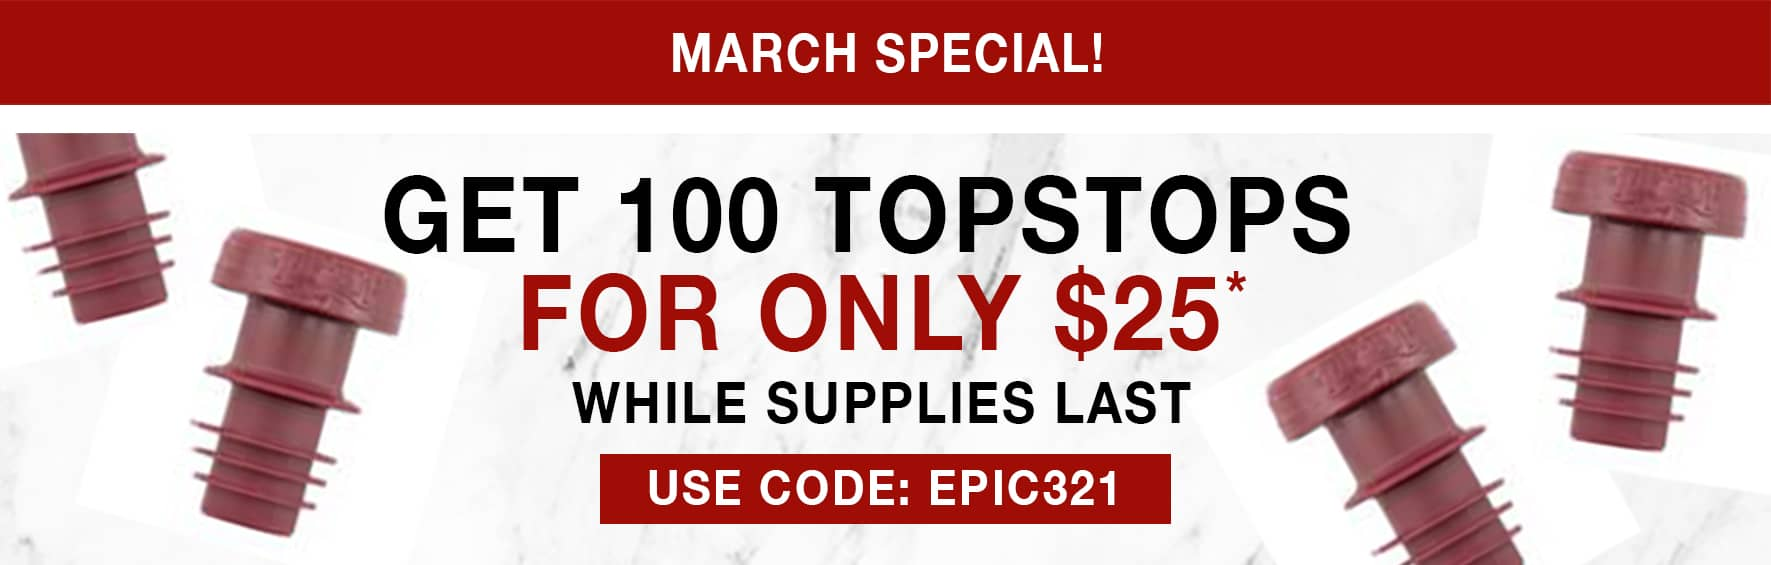 Get 100 Topstops for only $25* While Supplies Last